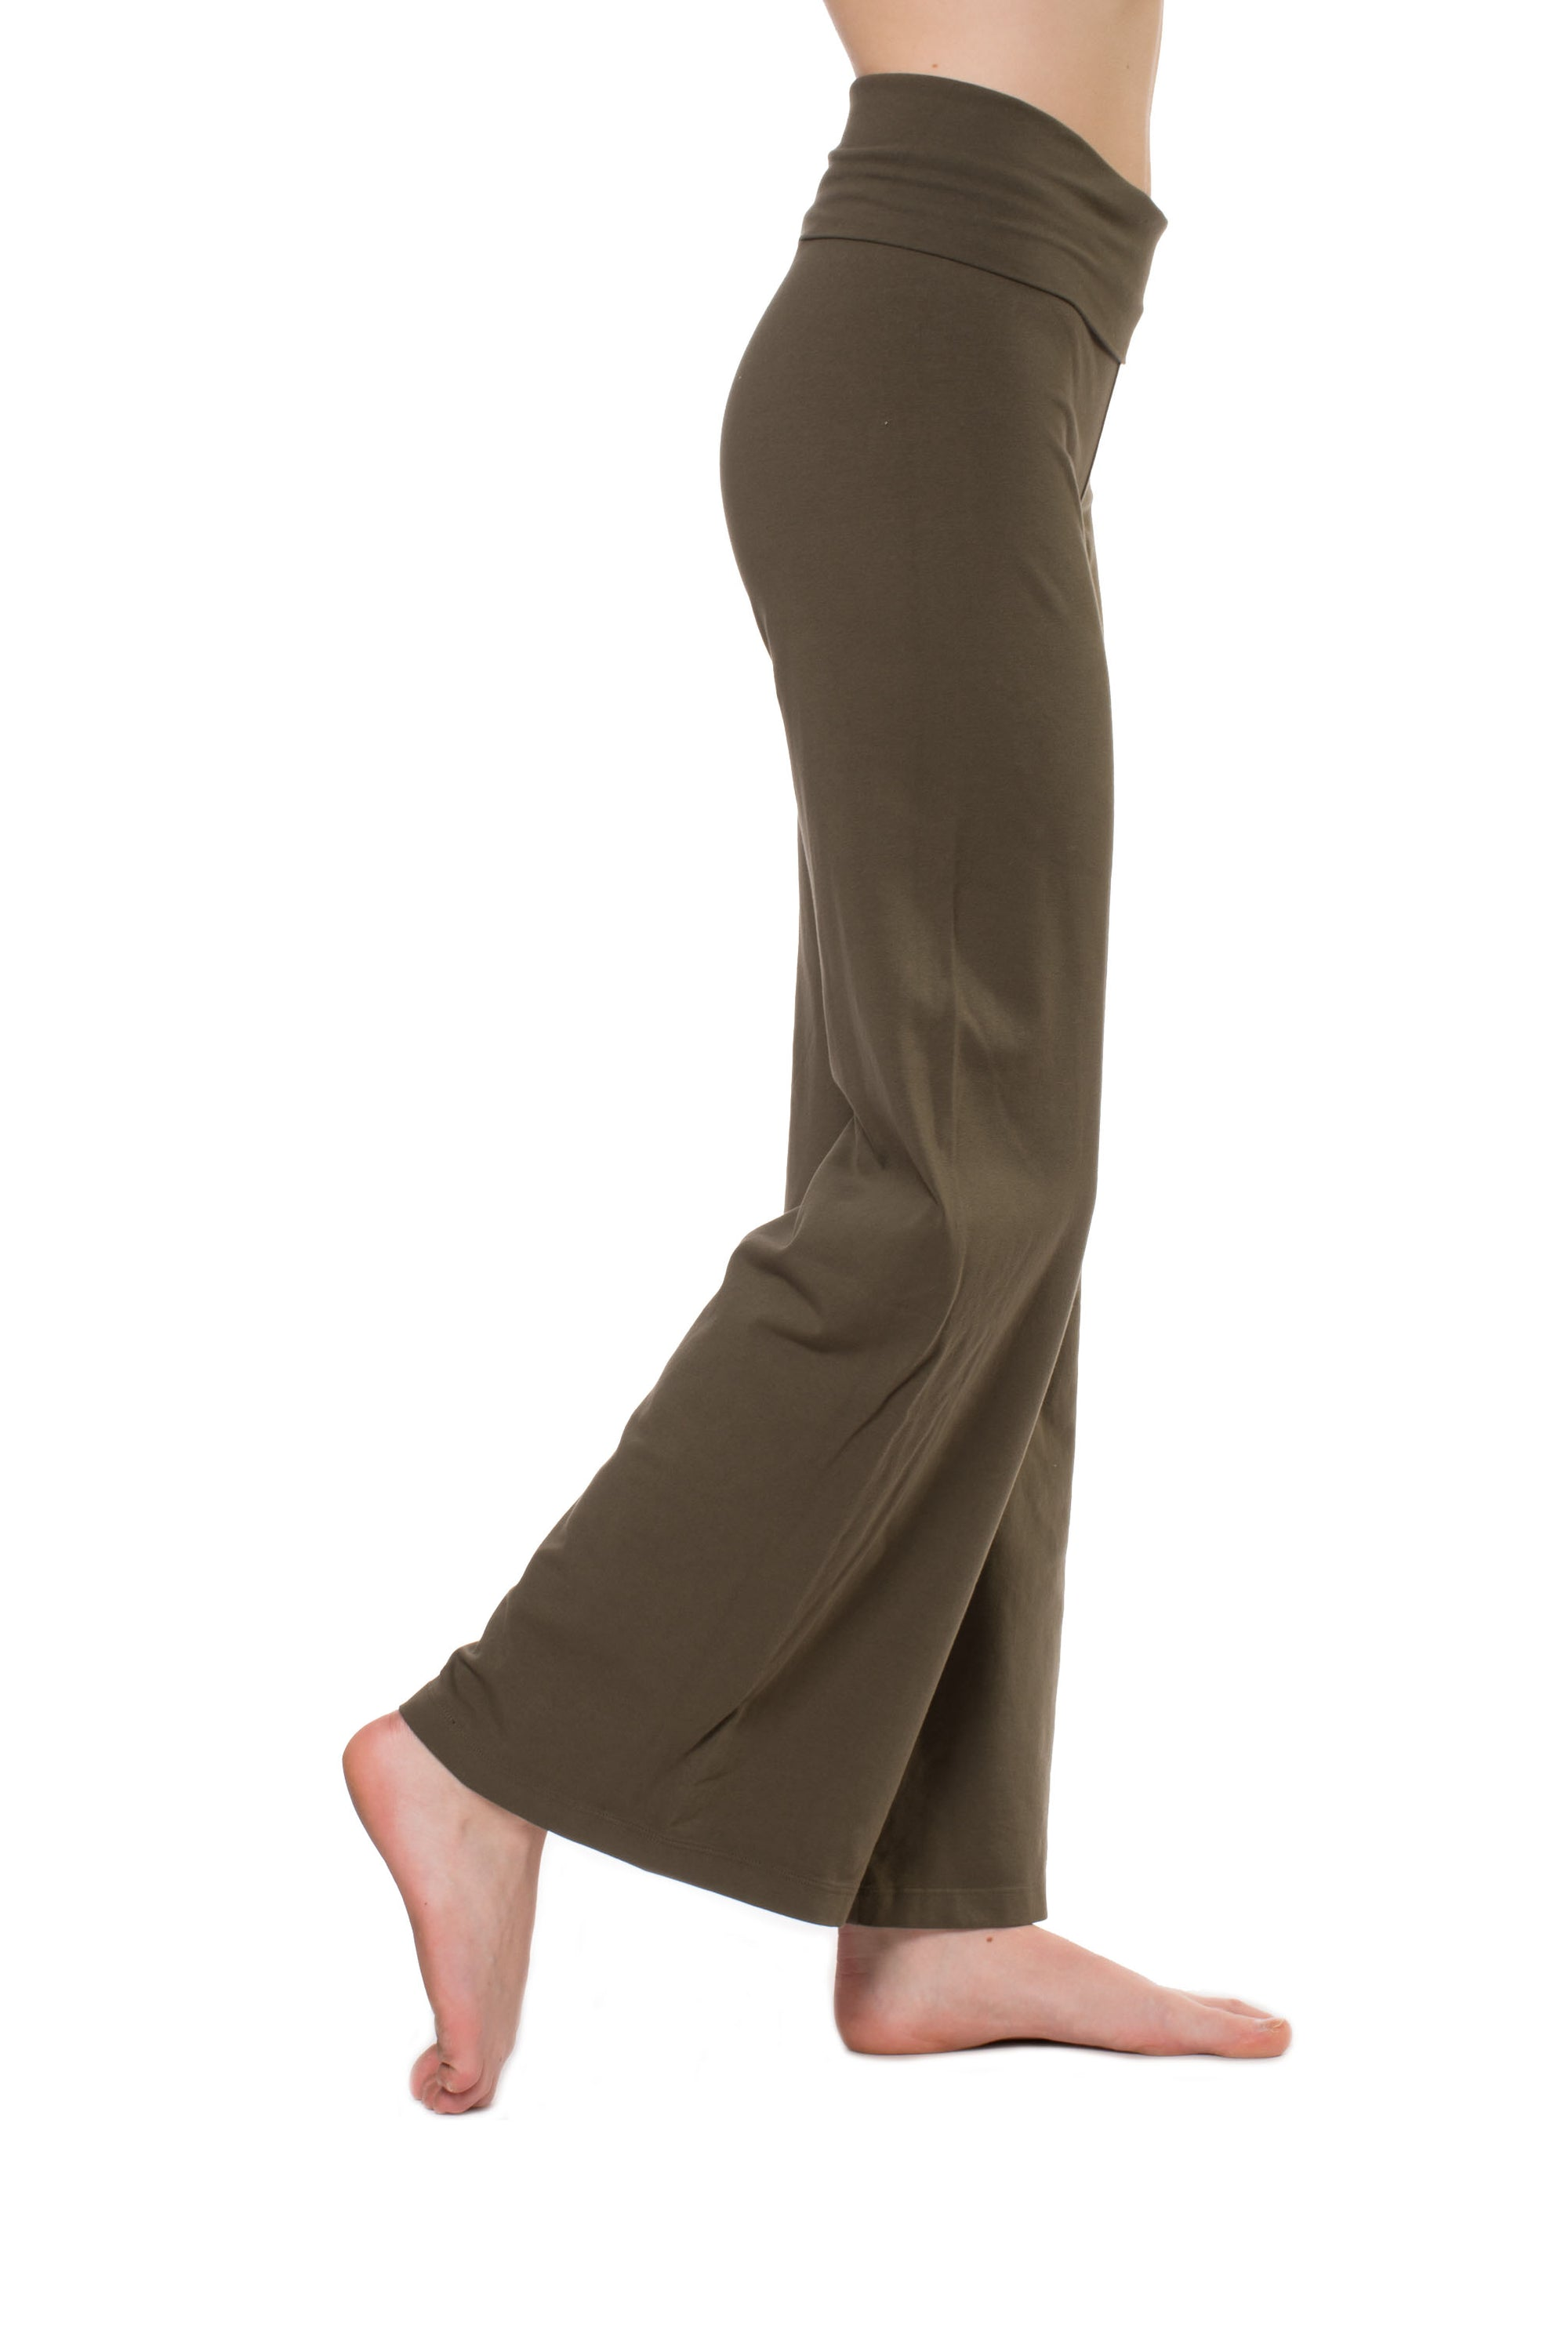 Wide Leg Roll Down Pants (Style W-326, Olive) by Hard Tail Forever